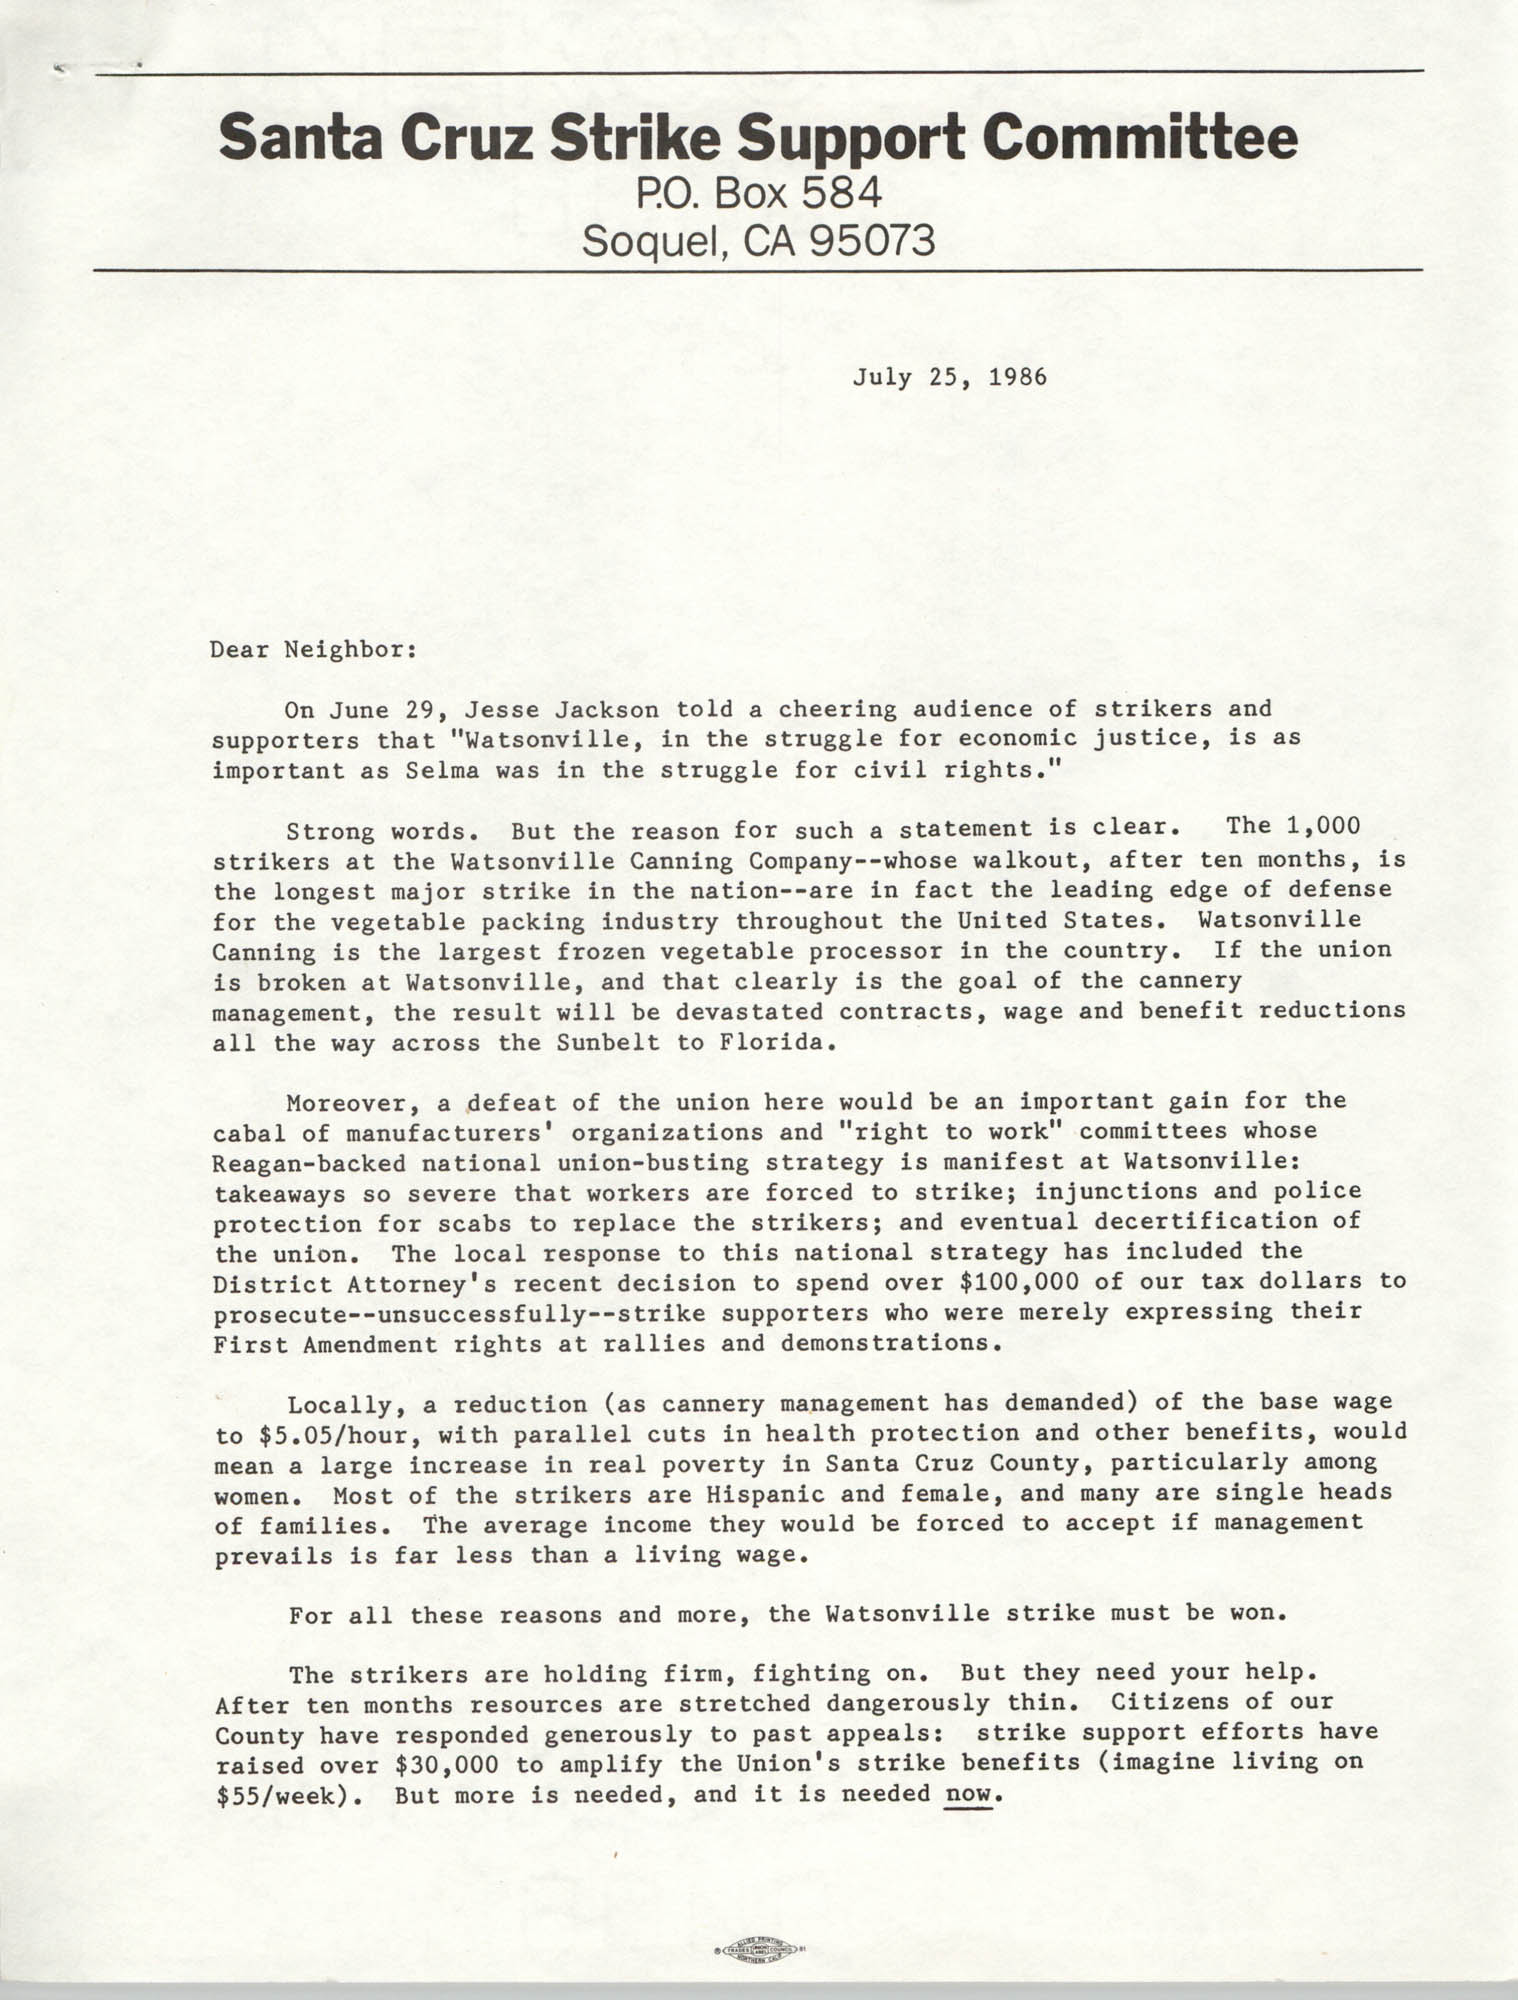 Letter from Santa Cruz Strike Support Committee, July 25, 1986